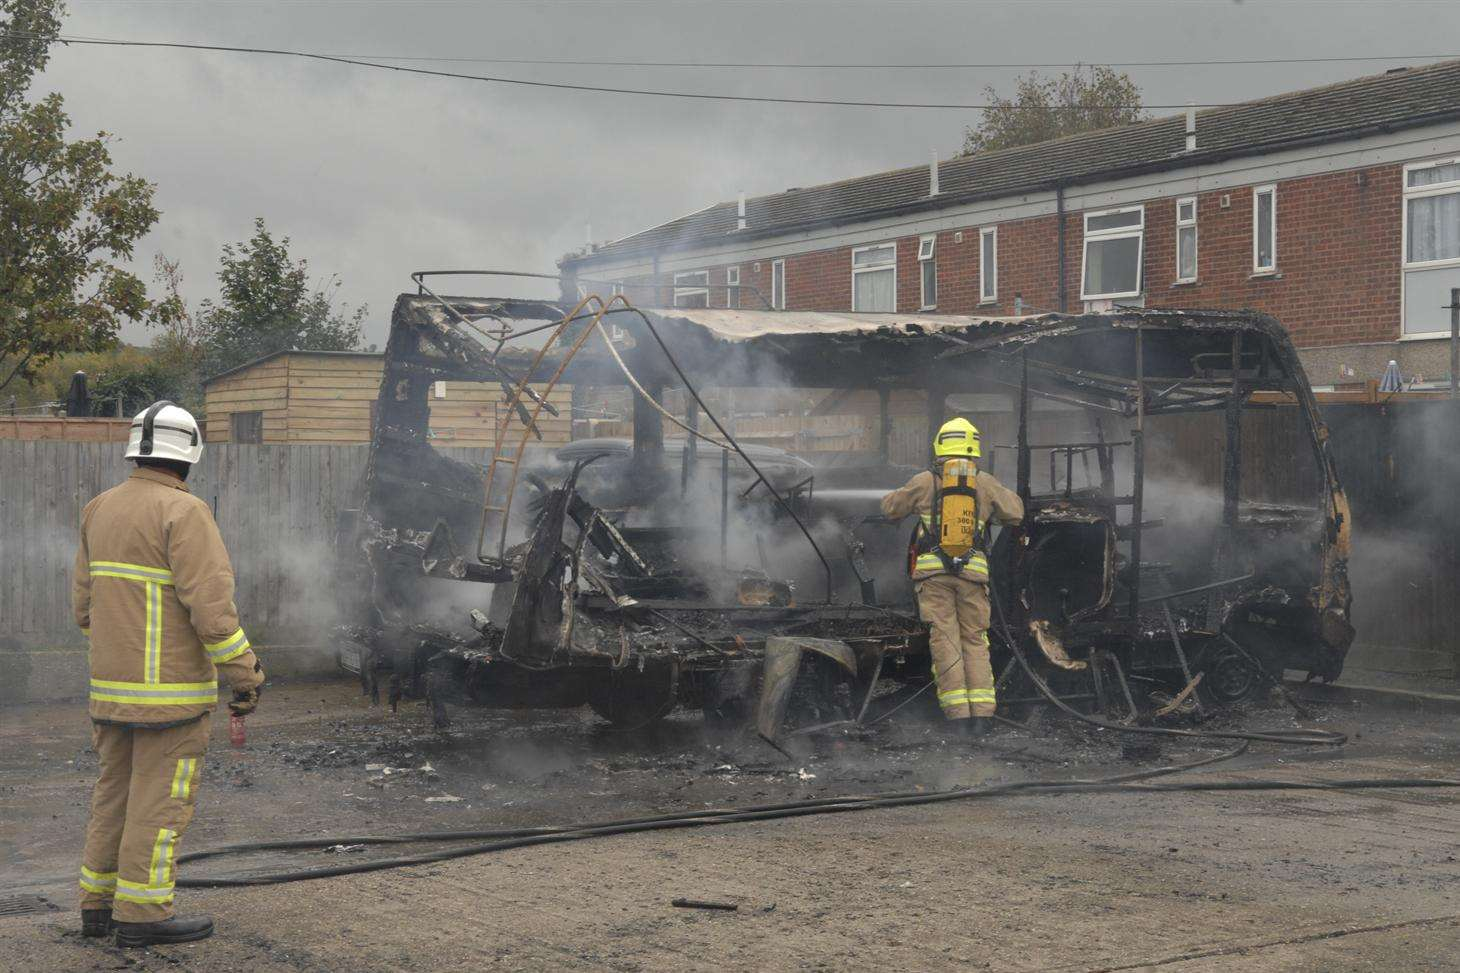 Firefighters damp down what is left of the campervan